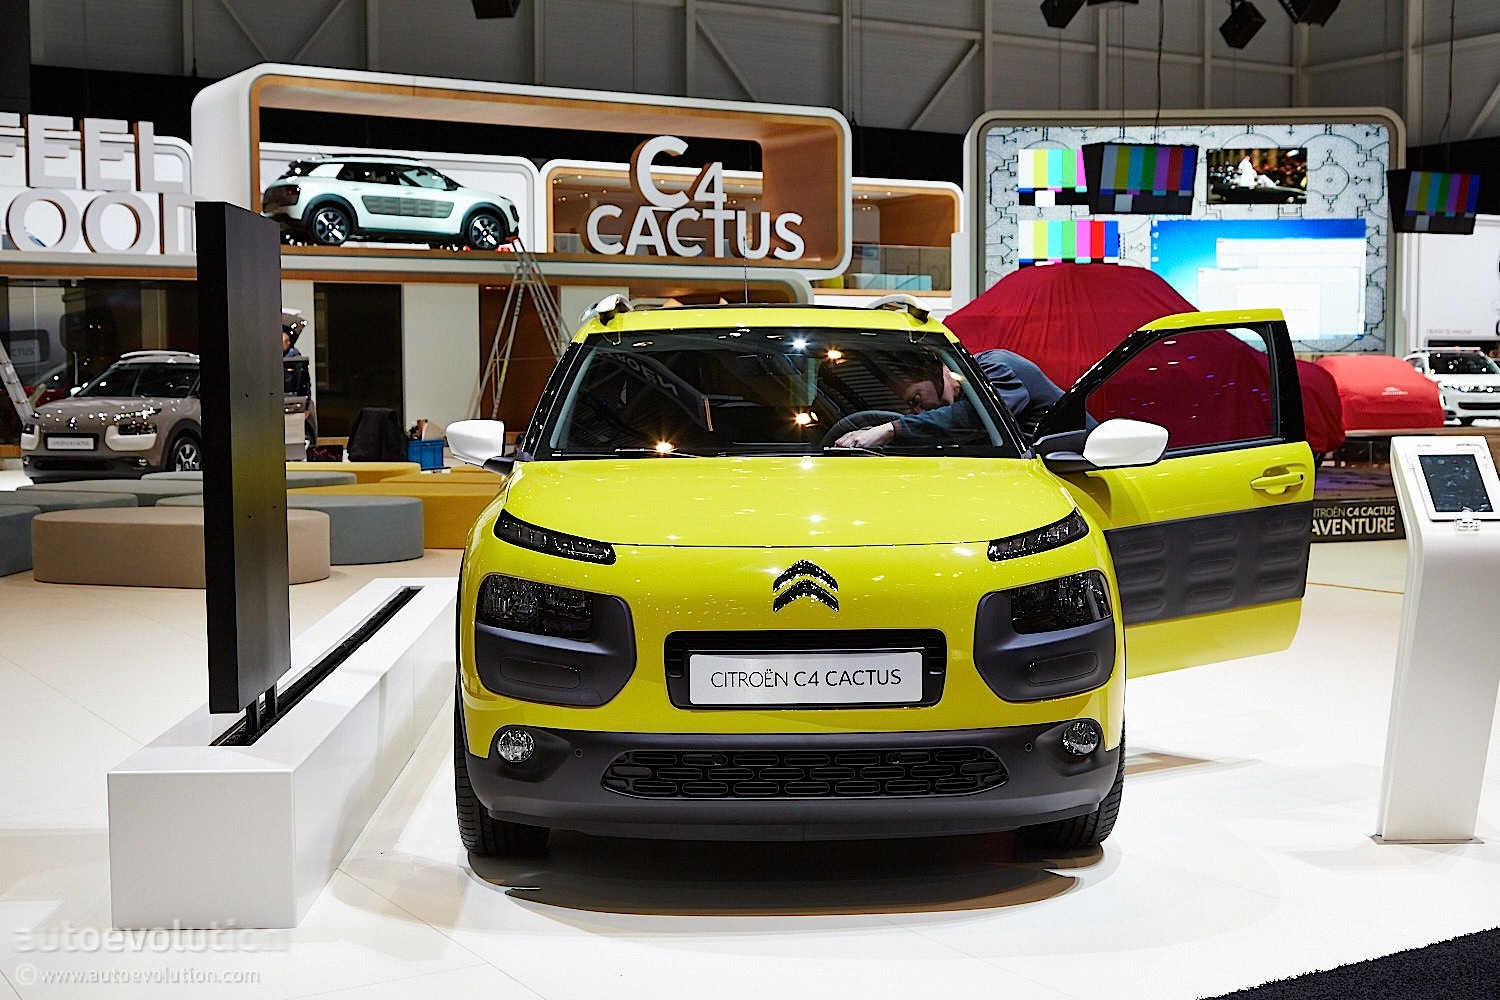 citroen to price c4 cactus from 13 950 in france making it cheaper than the c4 autoevolution. Black Bedroom Furniture Sets. Home Design Ideas